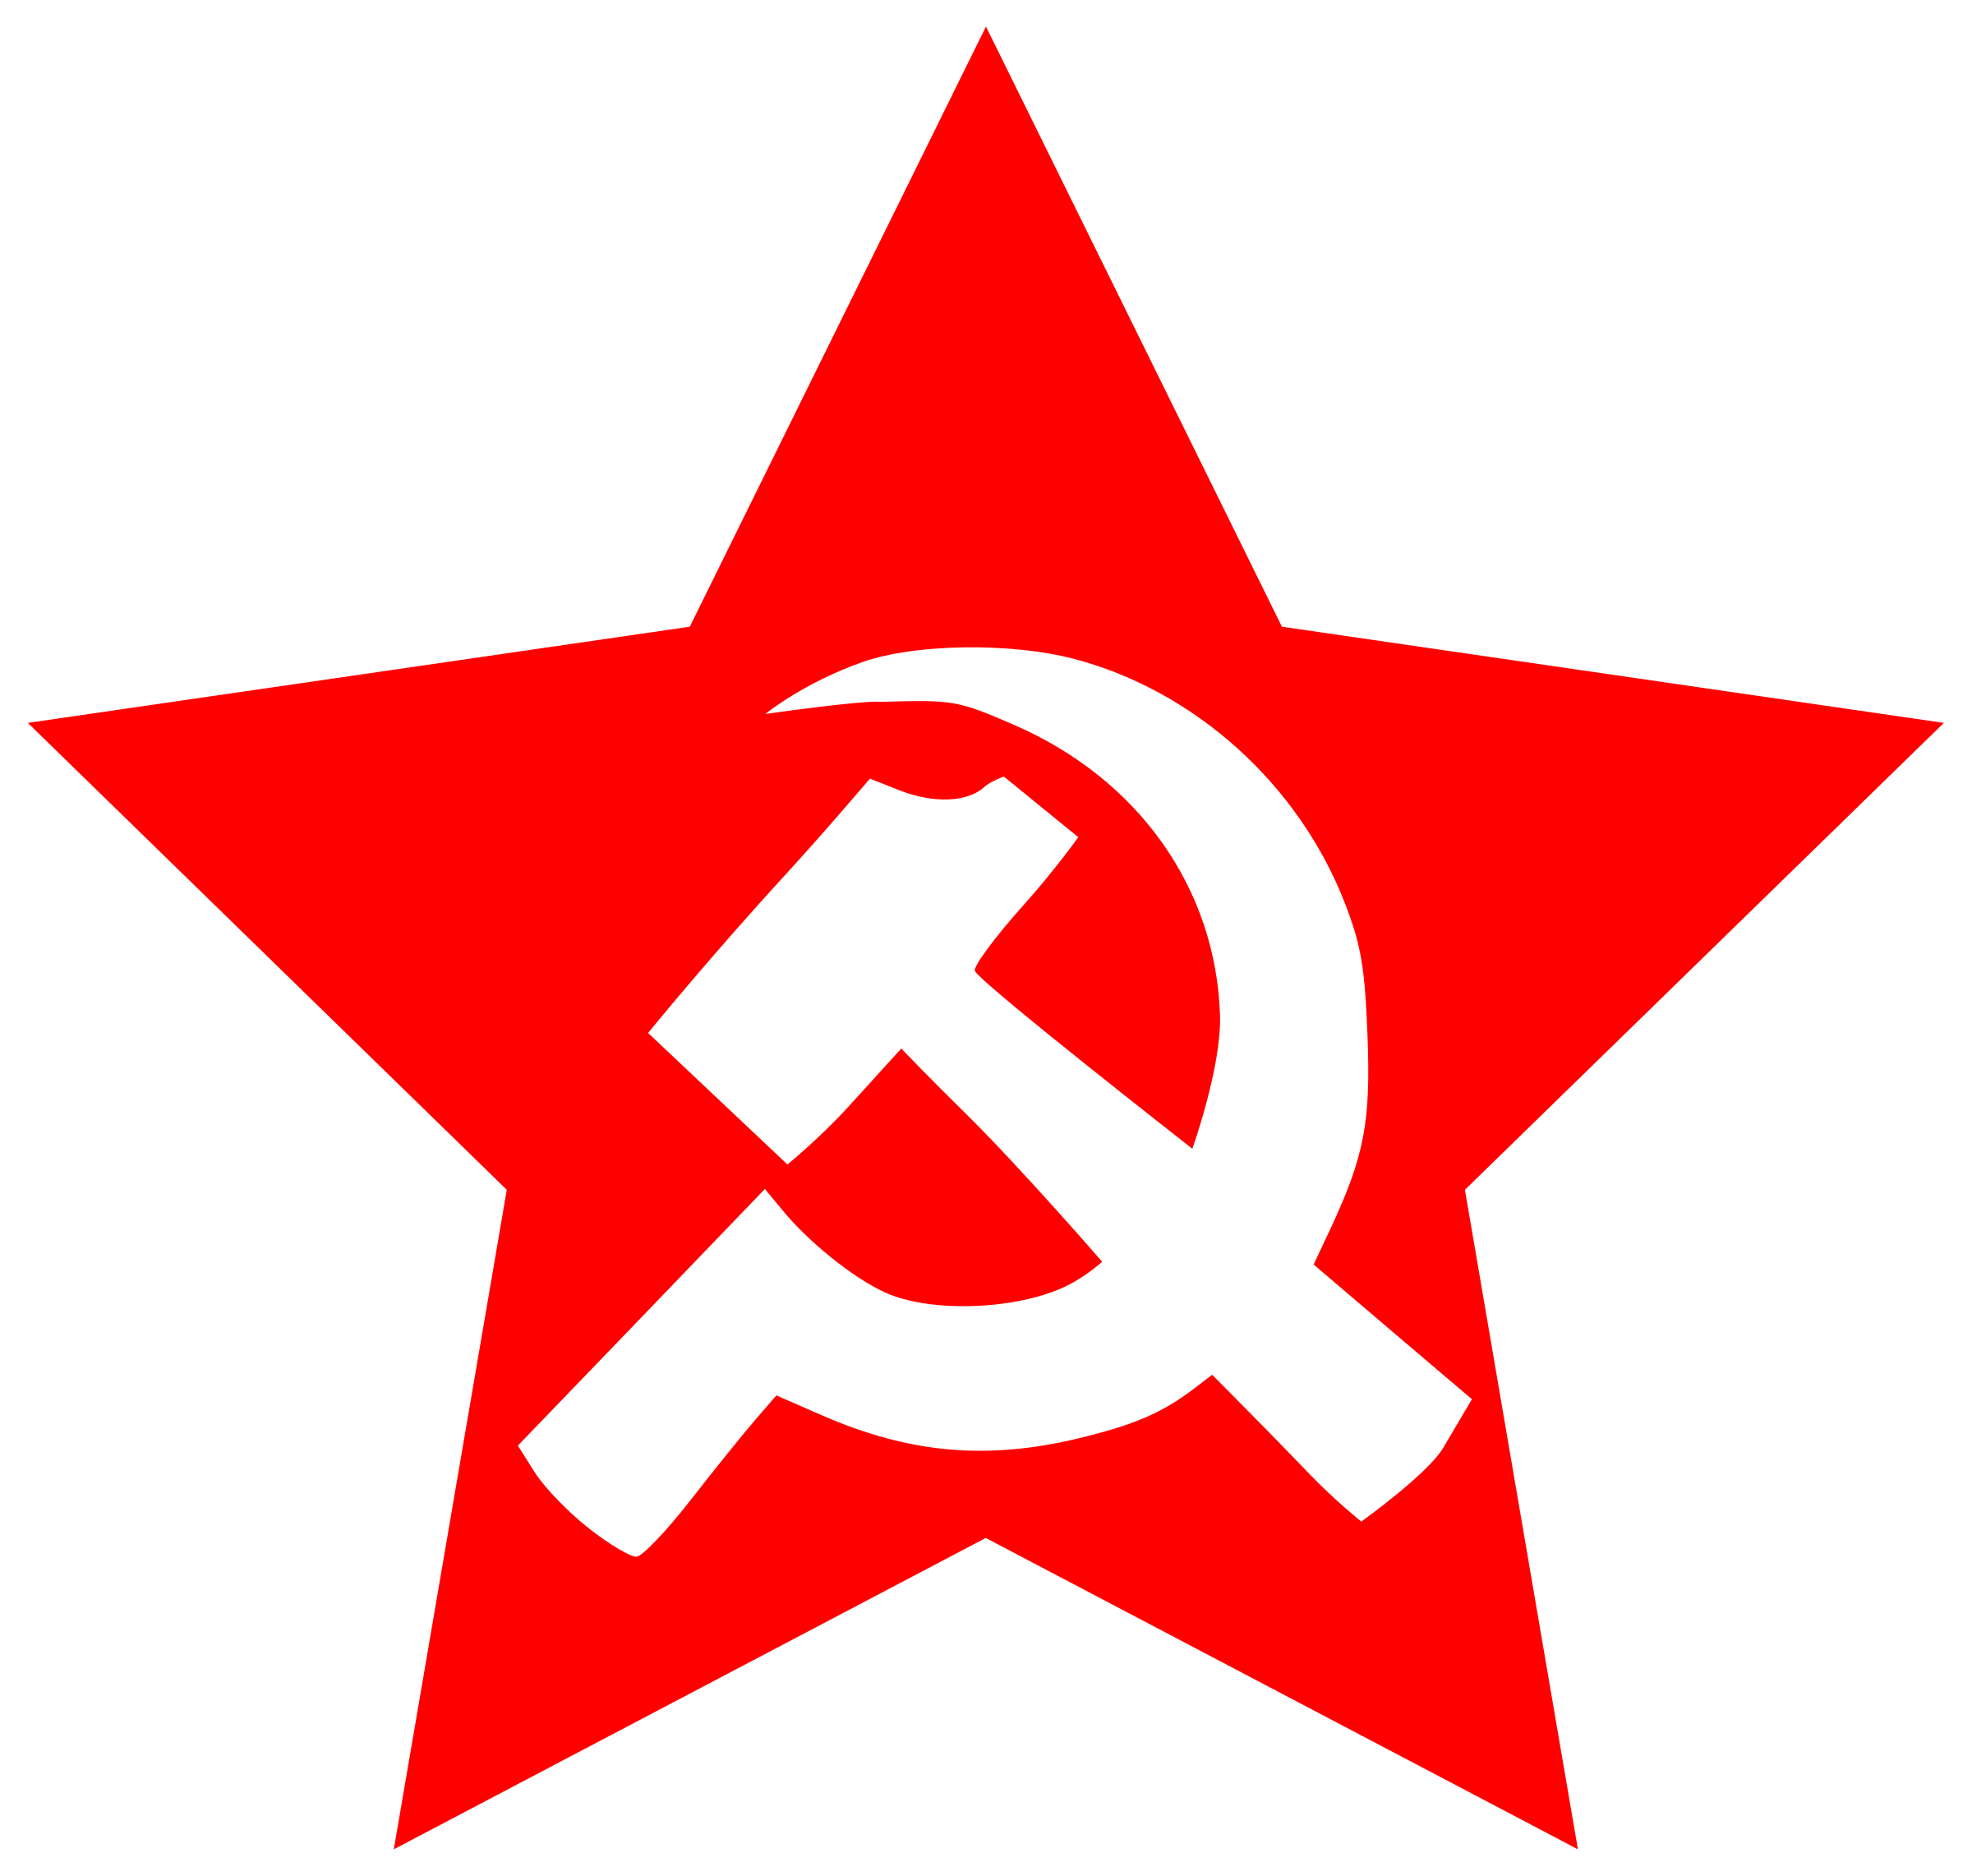 Hammer And Sickle In Star By At Worker Hammer And Sickle In Star On